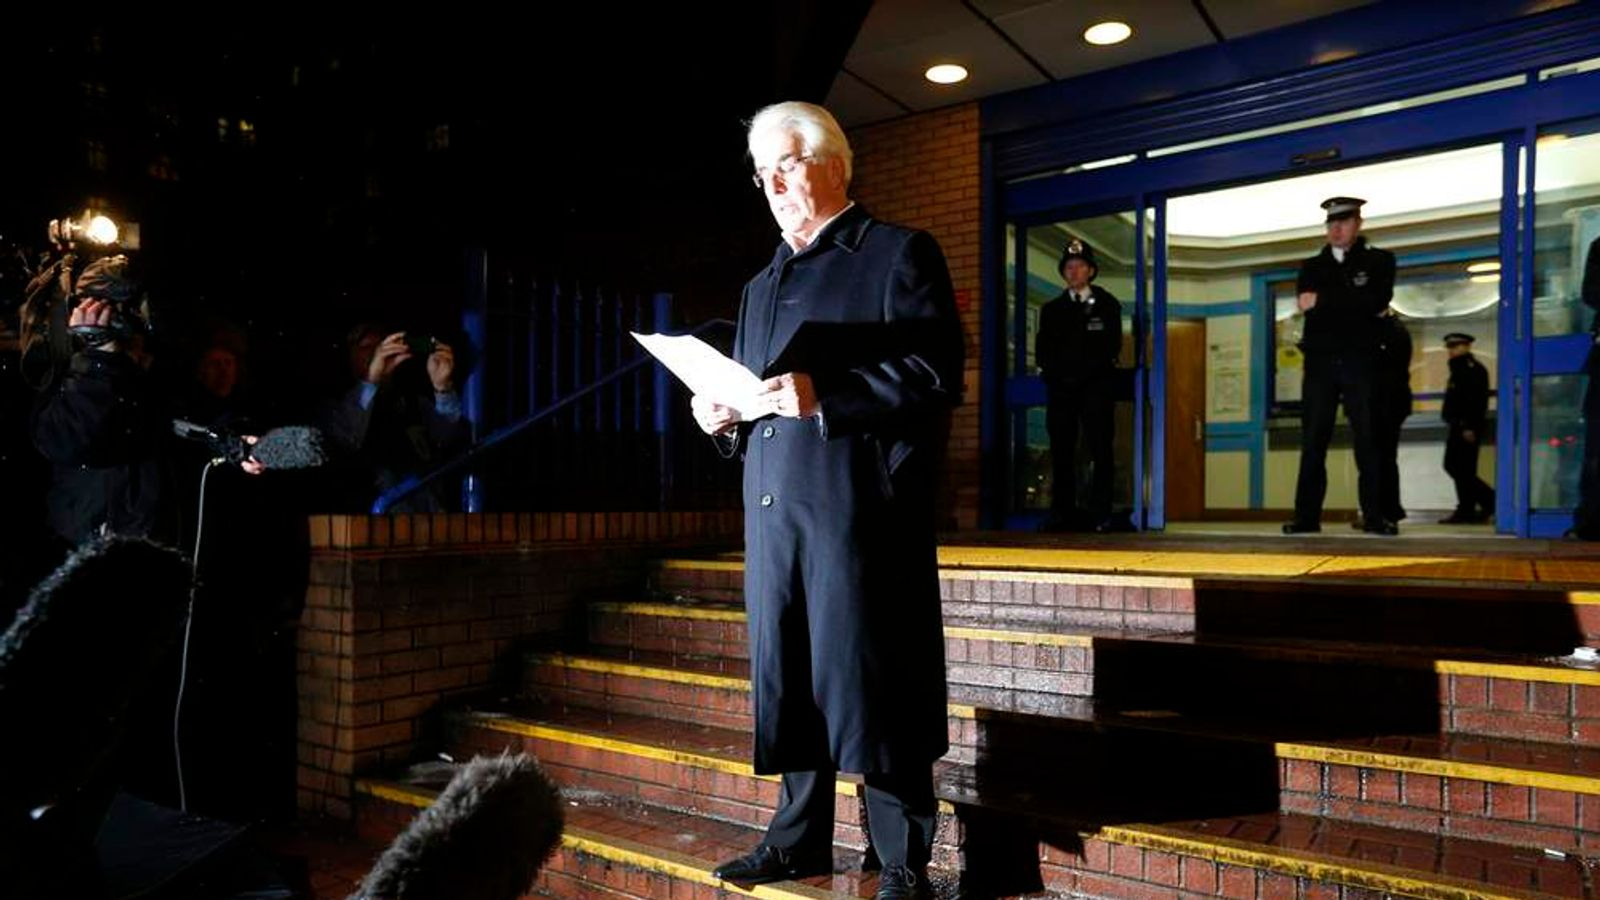 Max Clifford leaves Belgravia police station